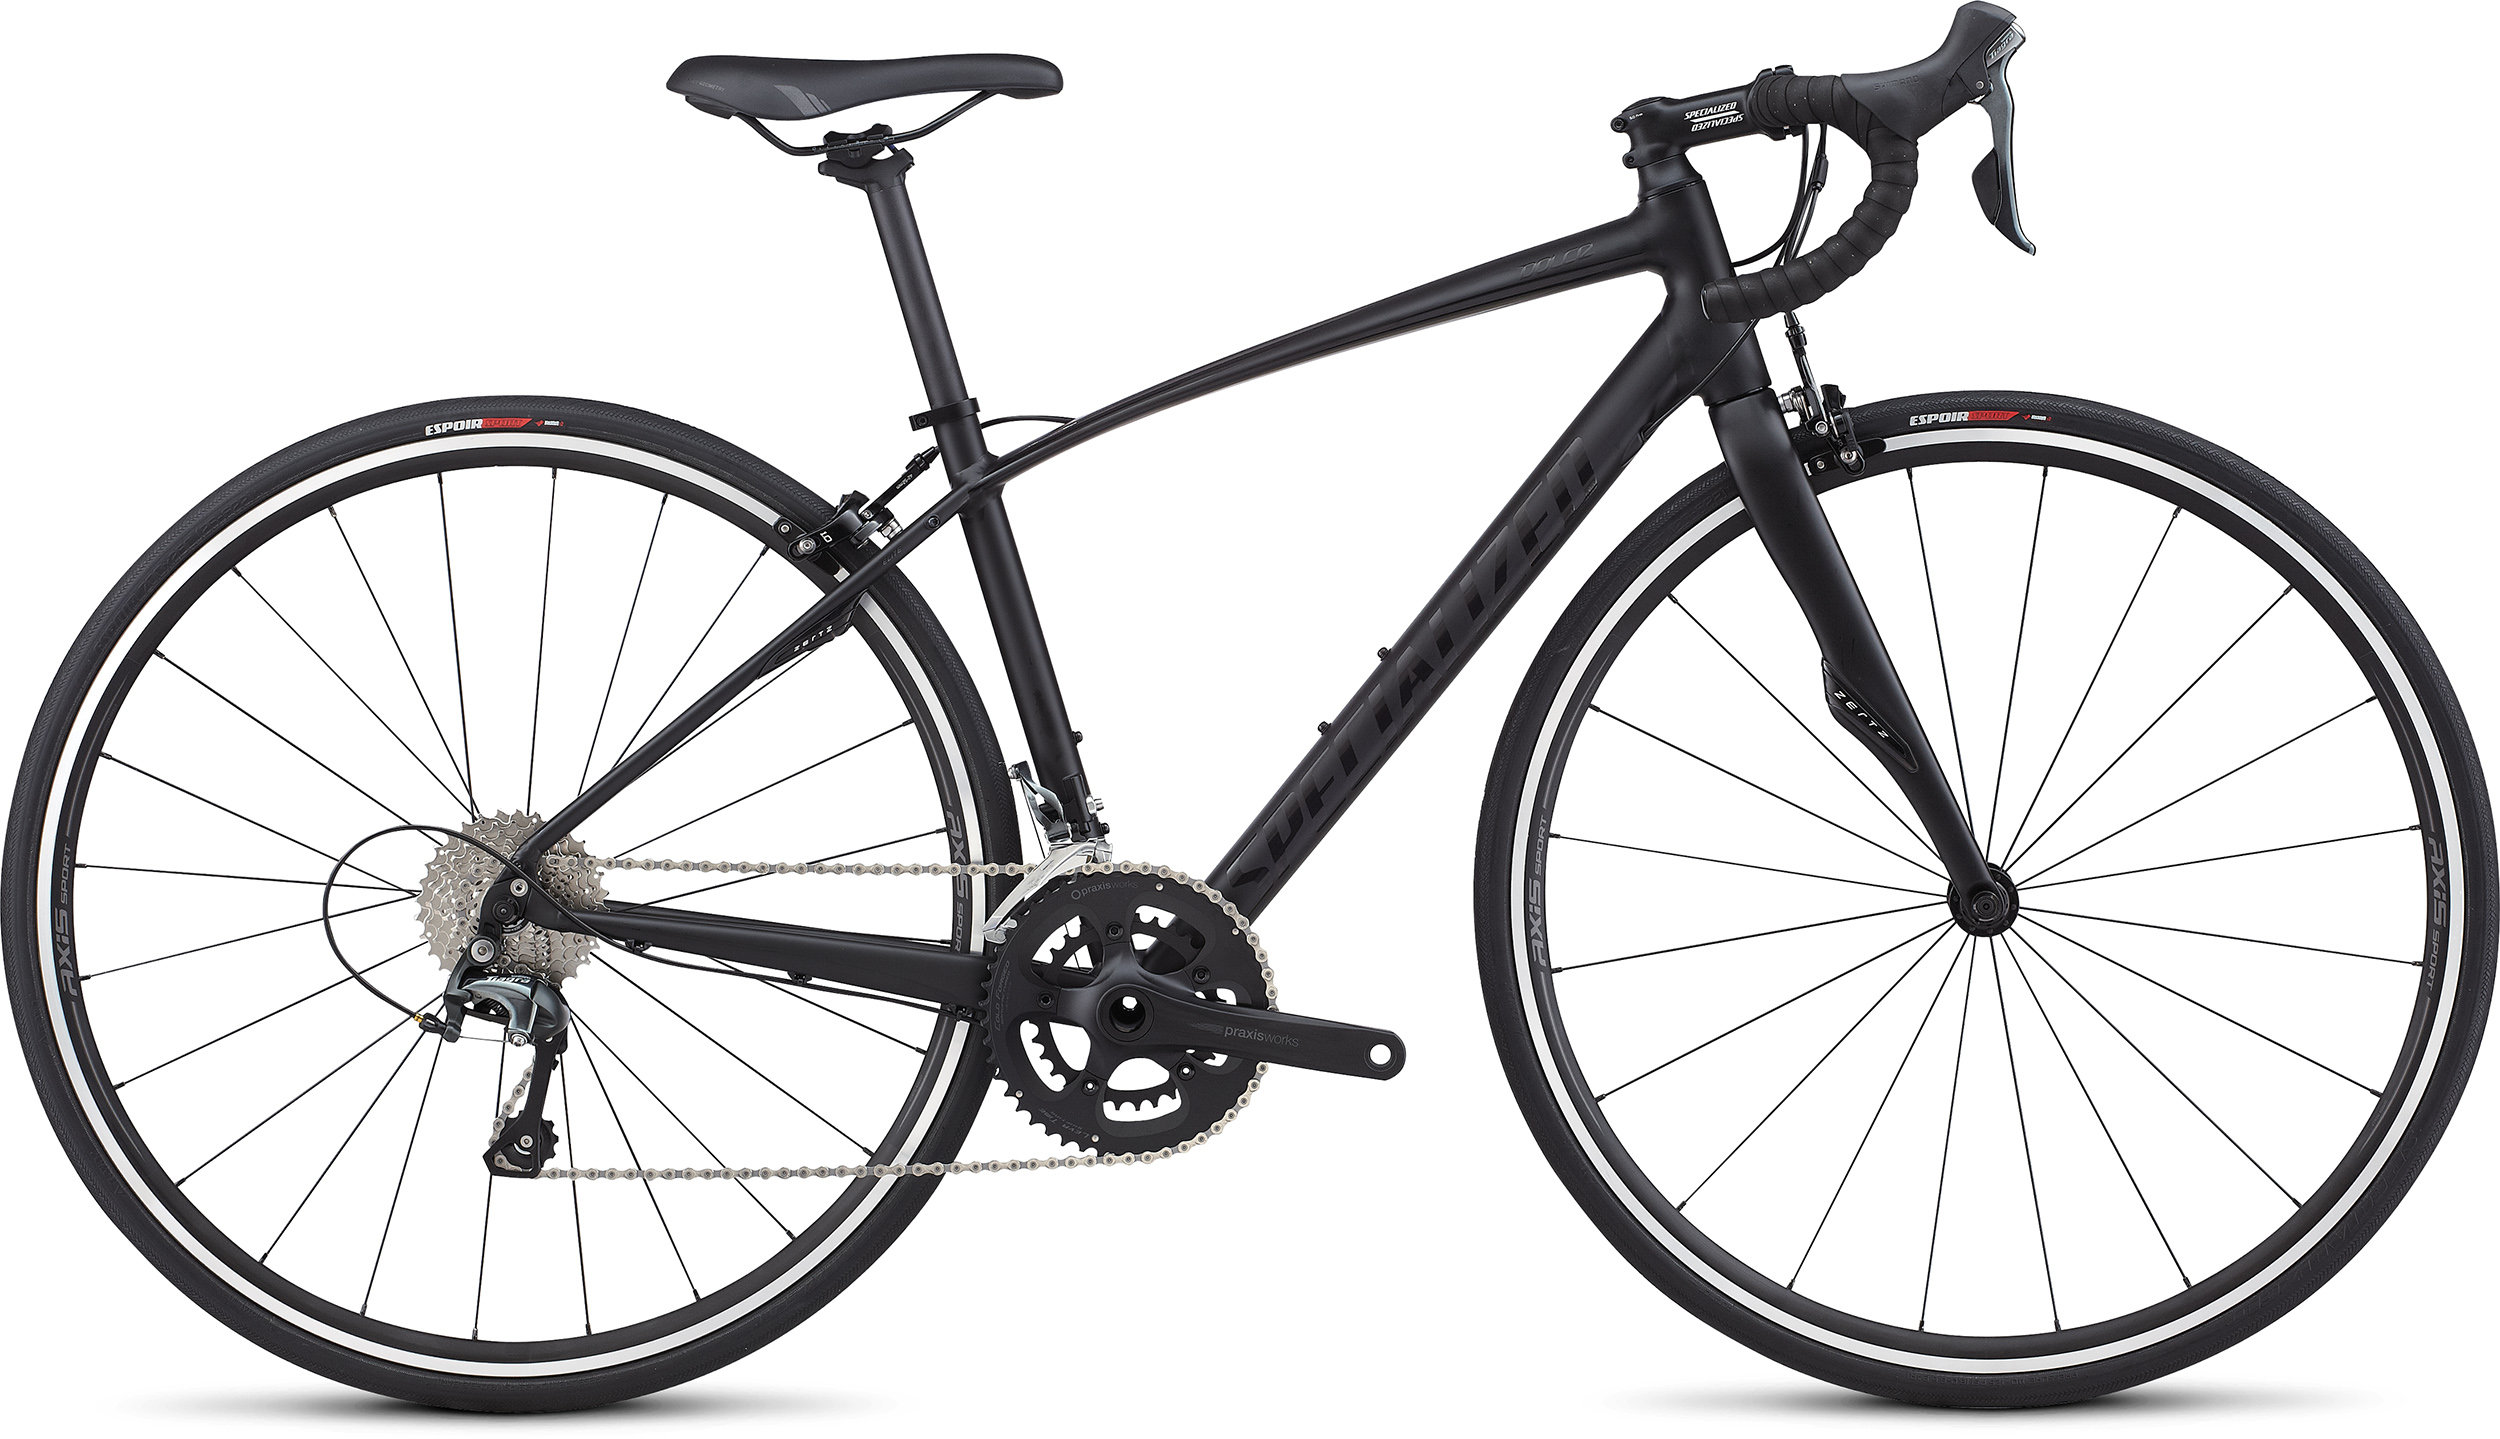 SPECIALIZED DOLCE E5 ELITE TARBLK/BLK 44 - Bike Zone